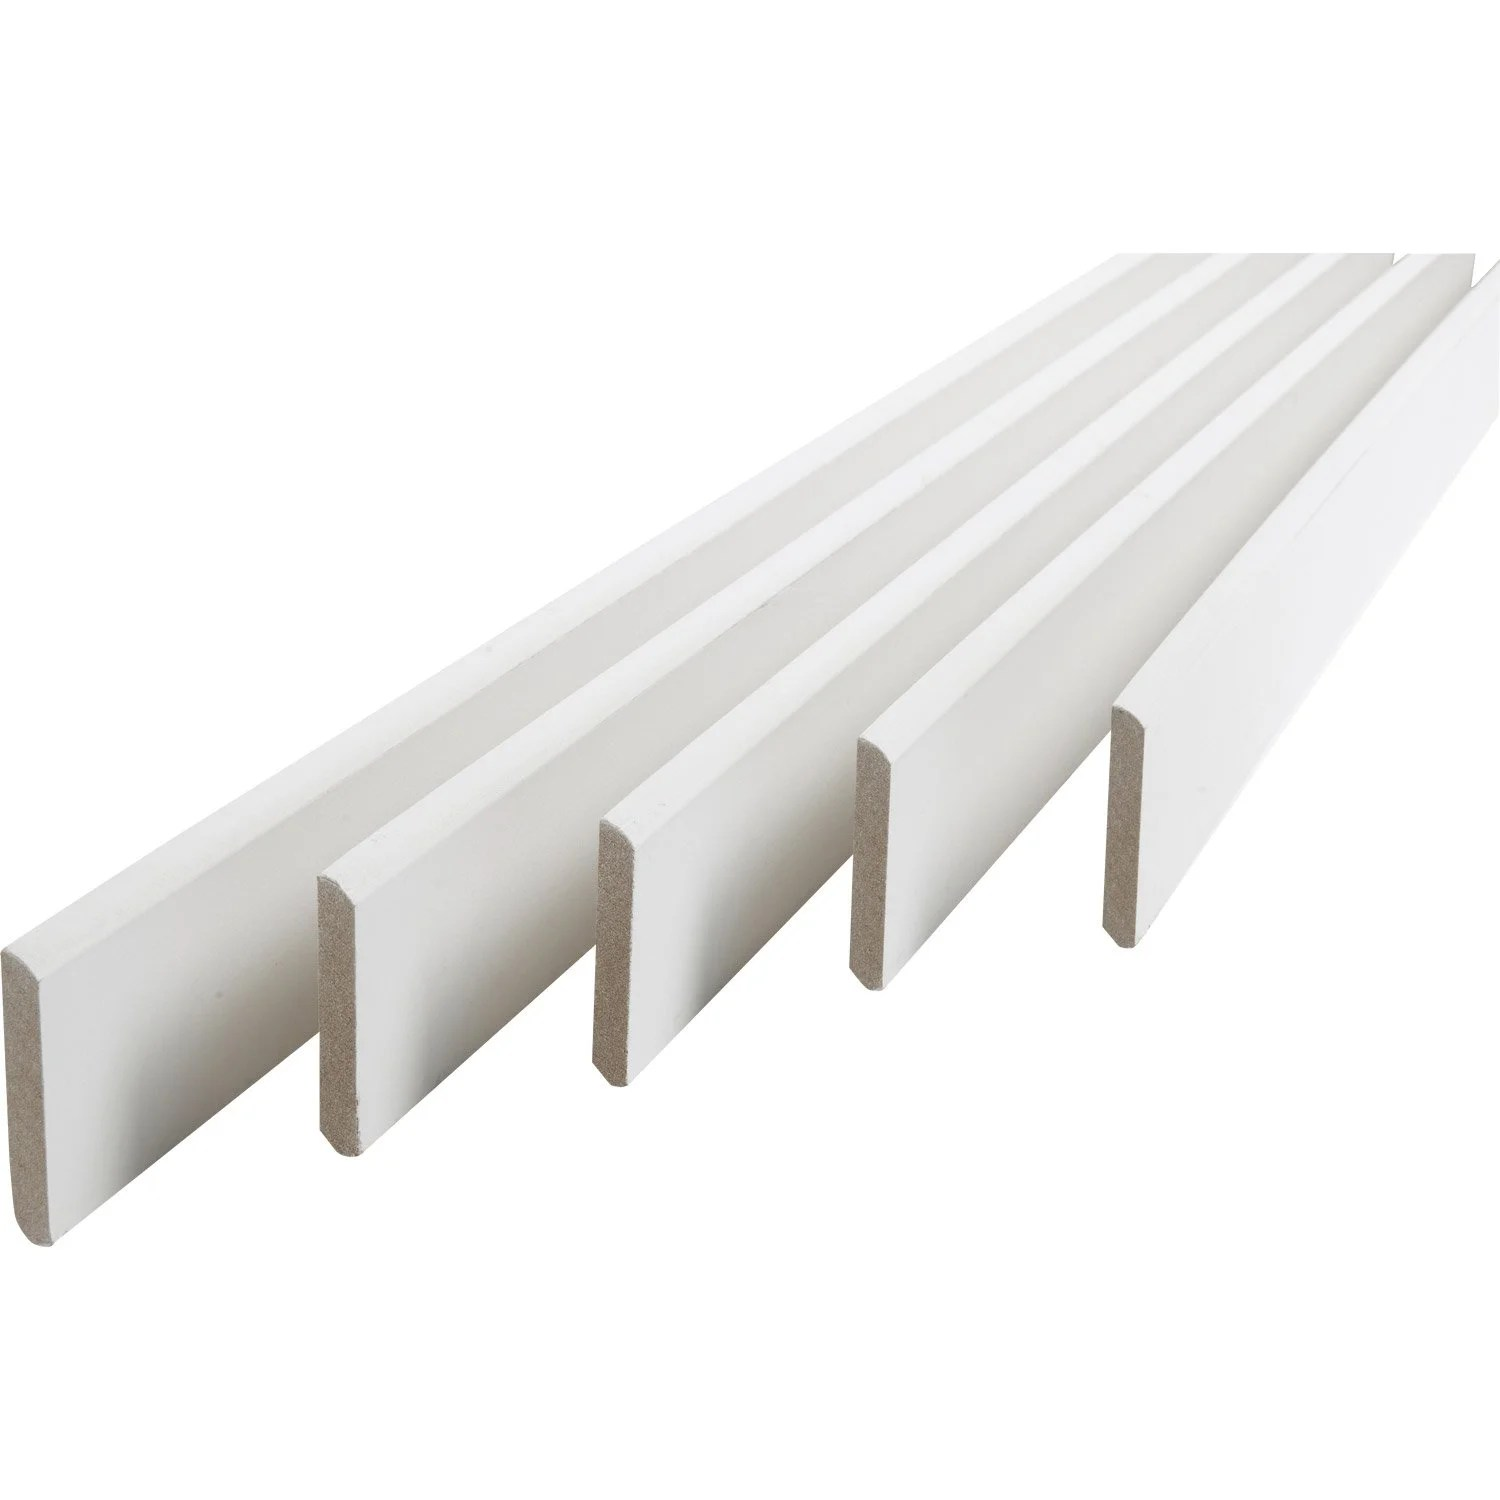 Profilé Plat Aluminium Leroy Merlin Lot De 5 Plinthes Médium Mdf Arrondies Peint Blanc 9 X